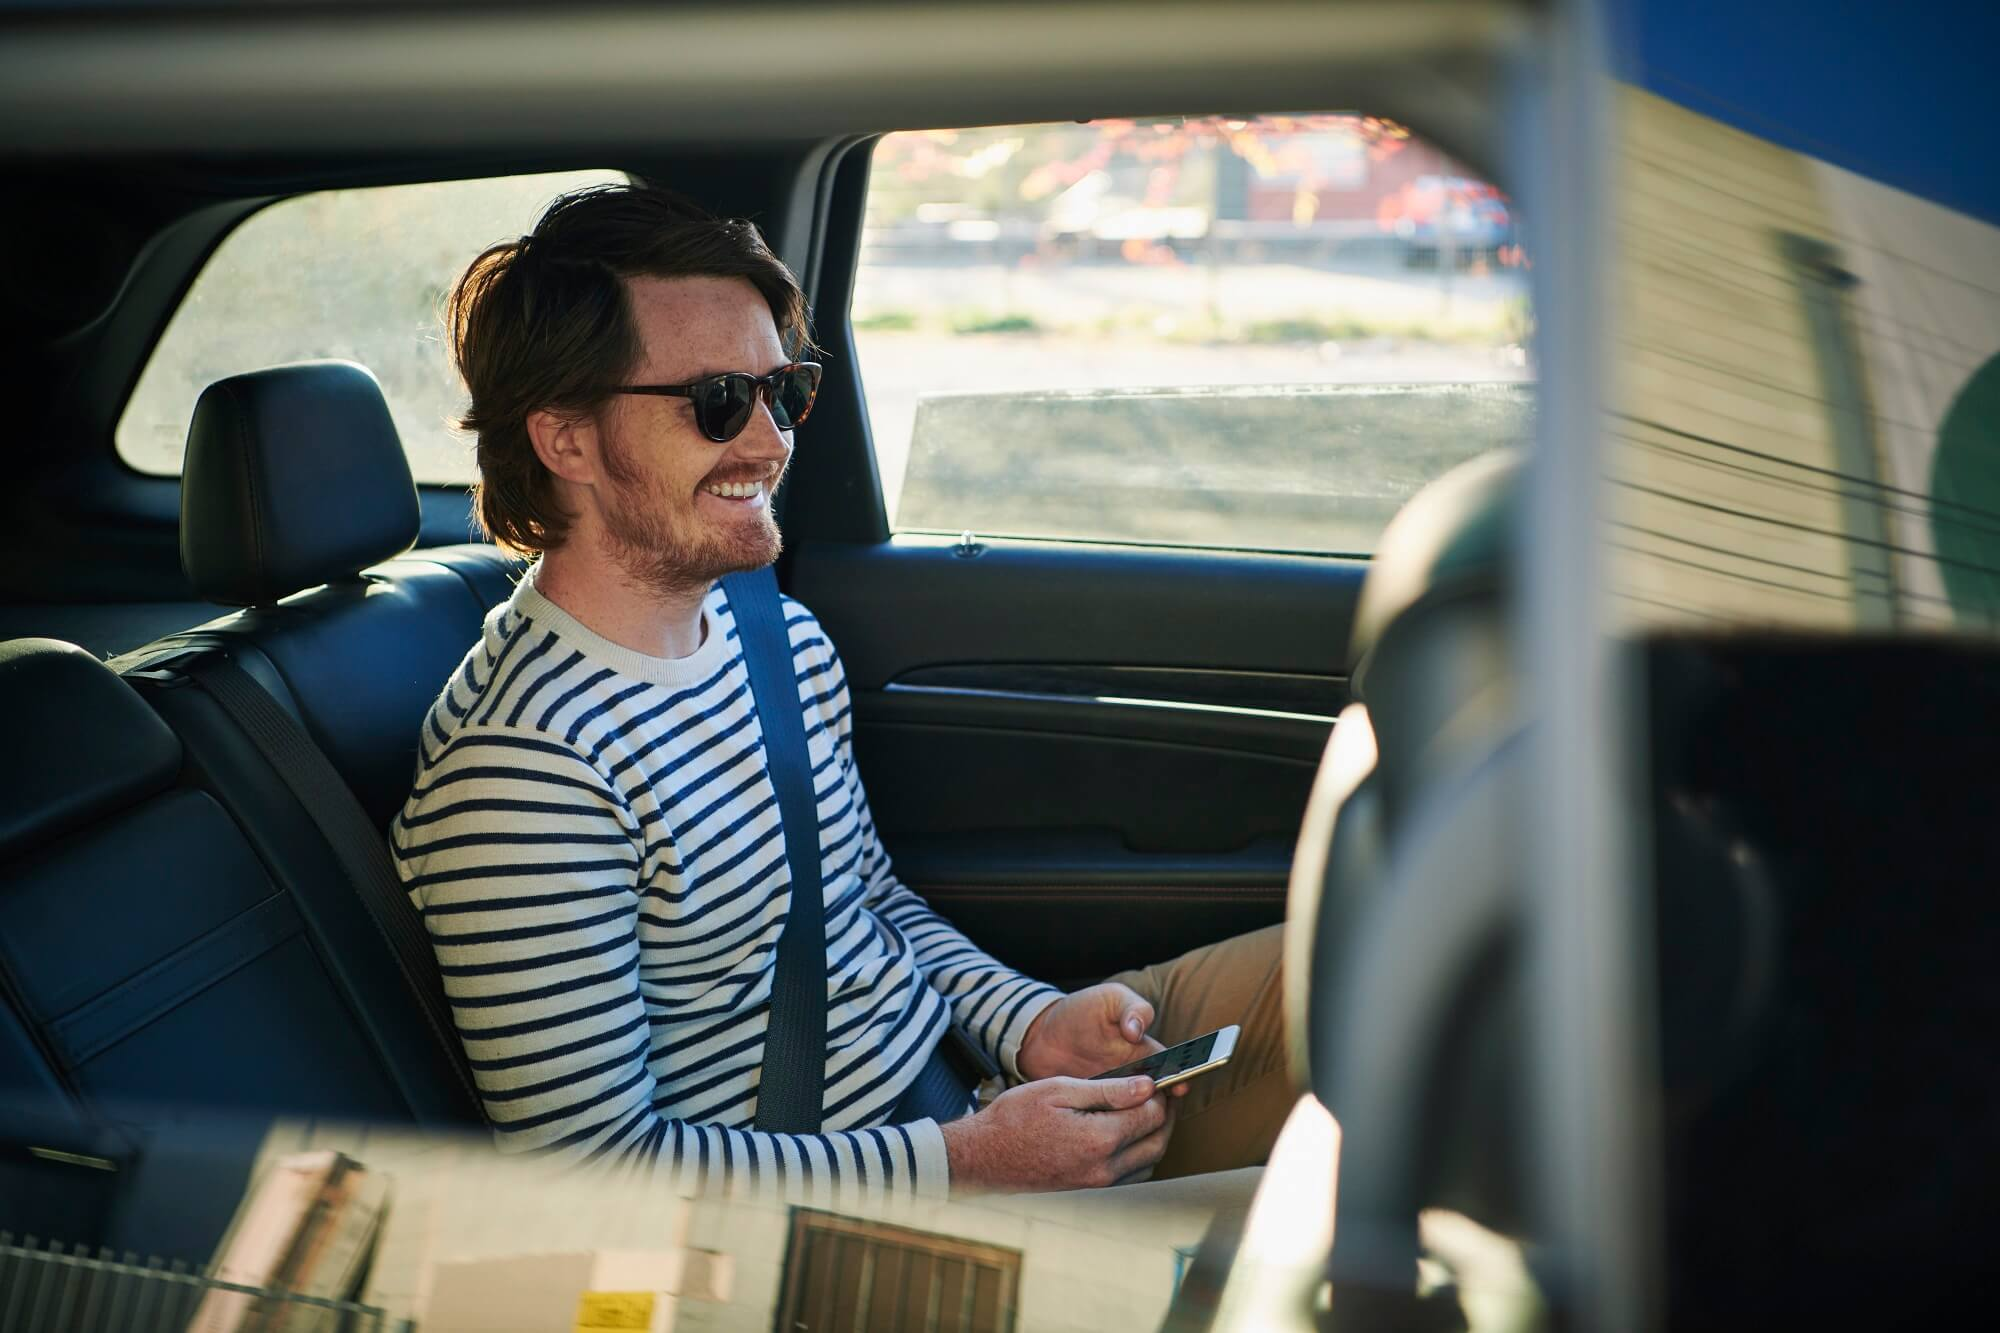 Smiling man with mobile phone sitting in backseat of car